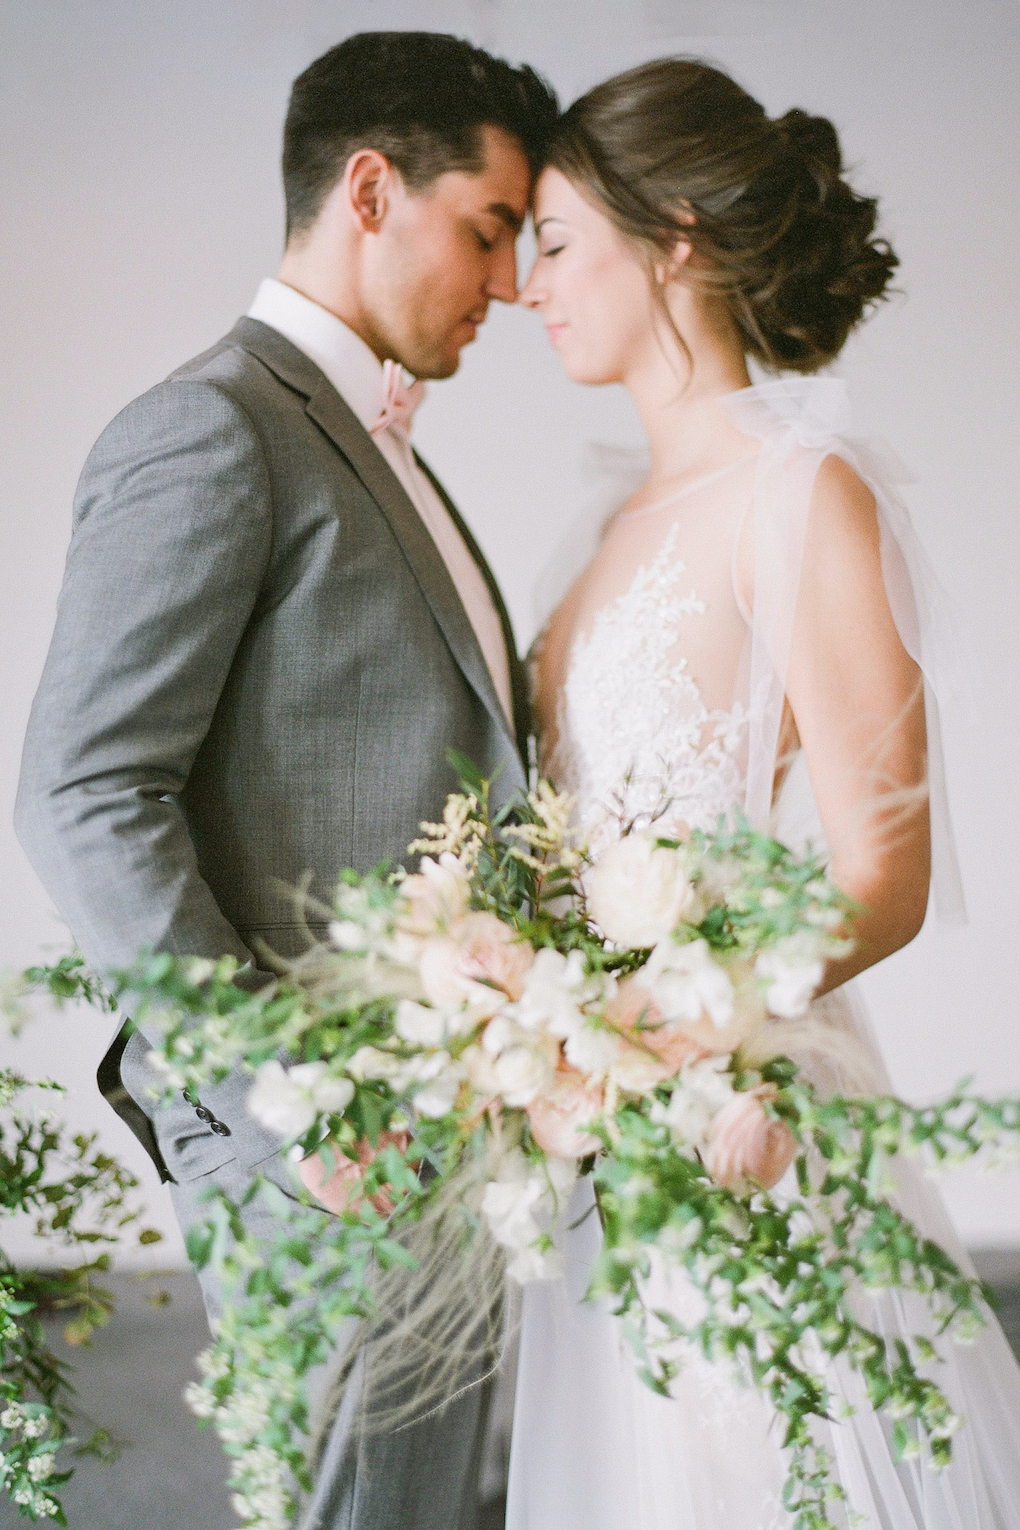 Clean and modern wedding shots: Soft and Subtle Palettes of Spring Blossoms | Editorial Shoot at The Renaissance Pittsburgh by Exhale Events. See more inspiration at exhale-events.com!